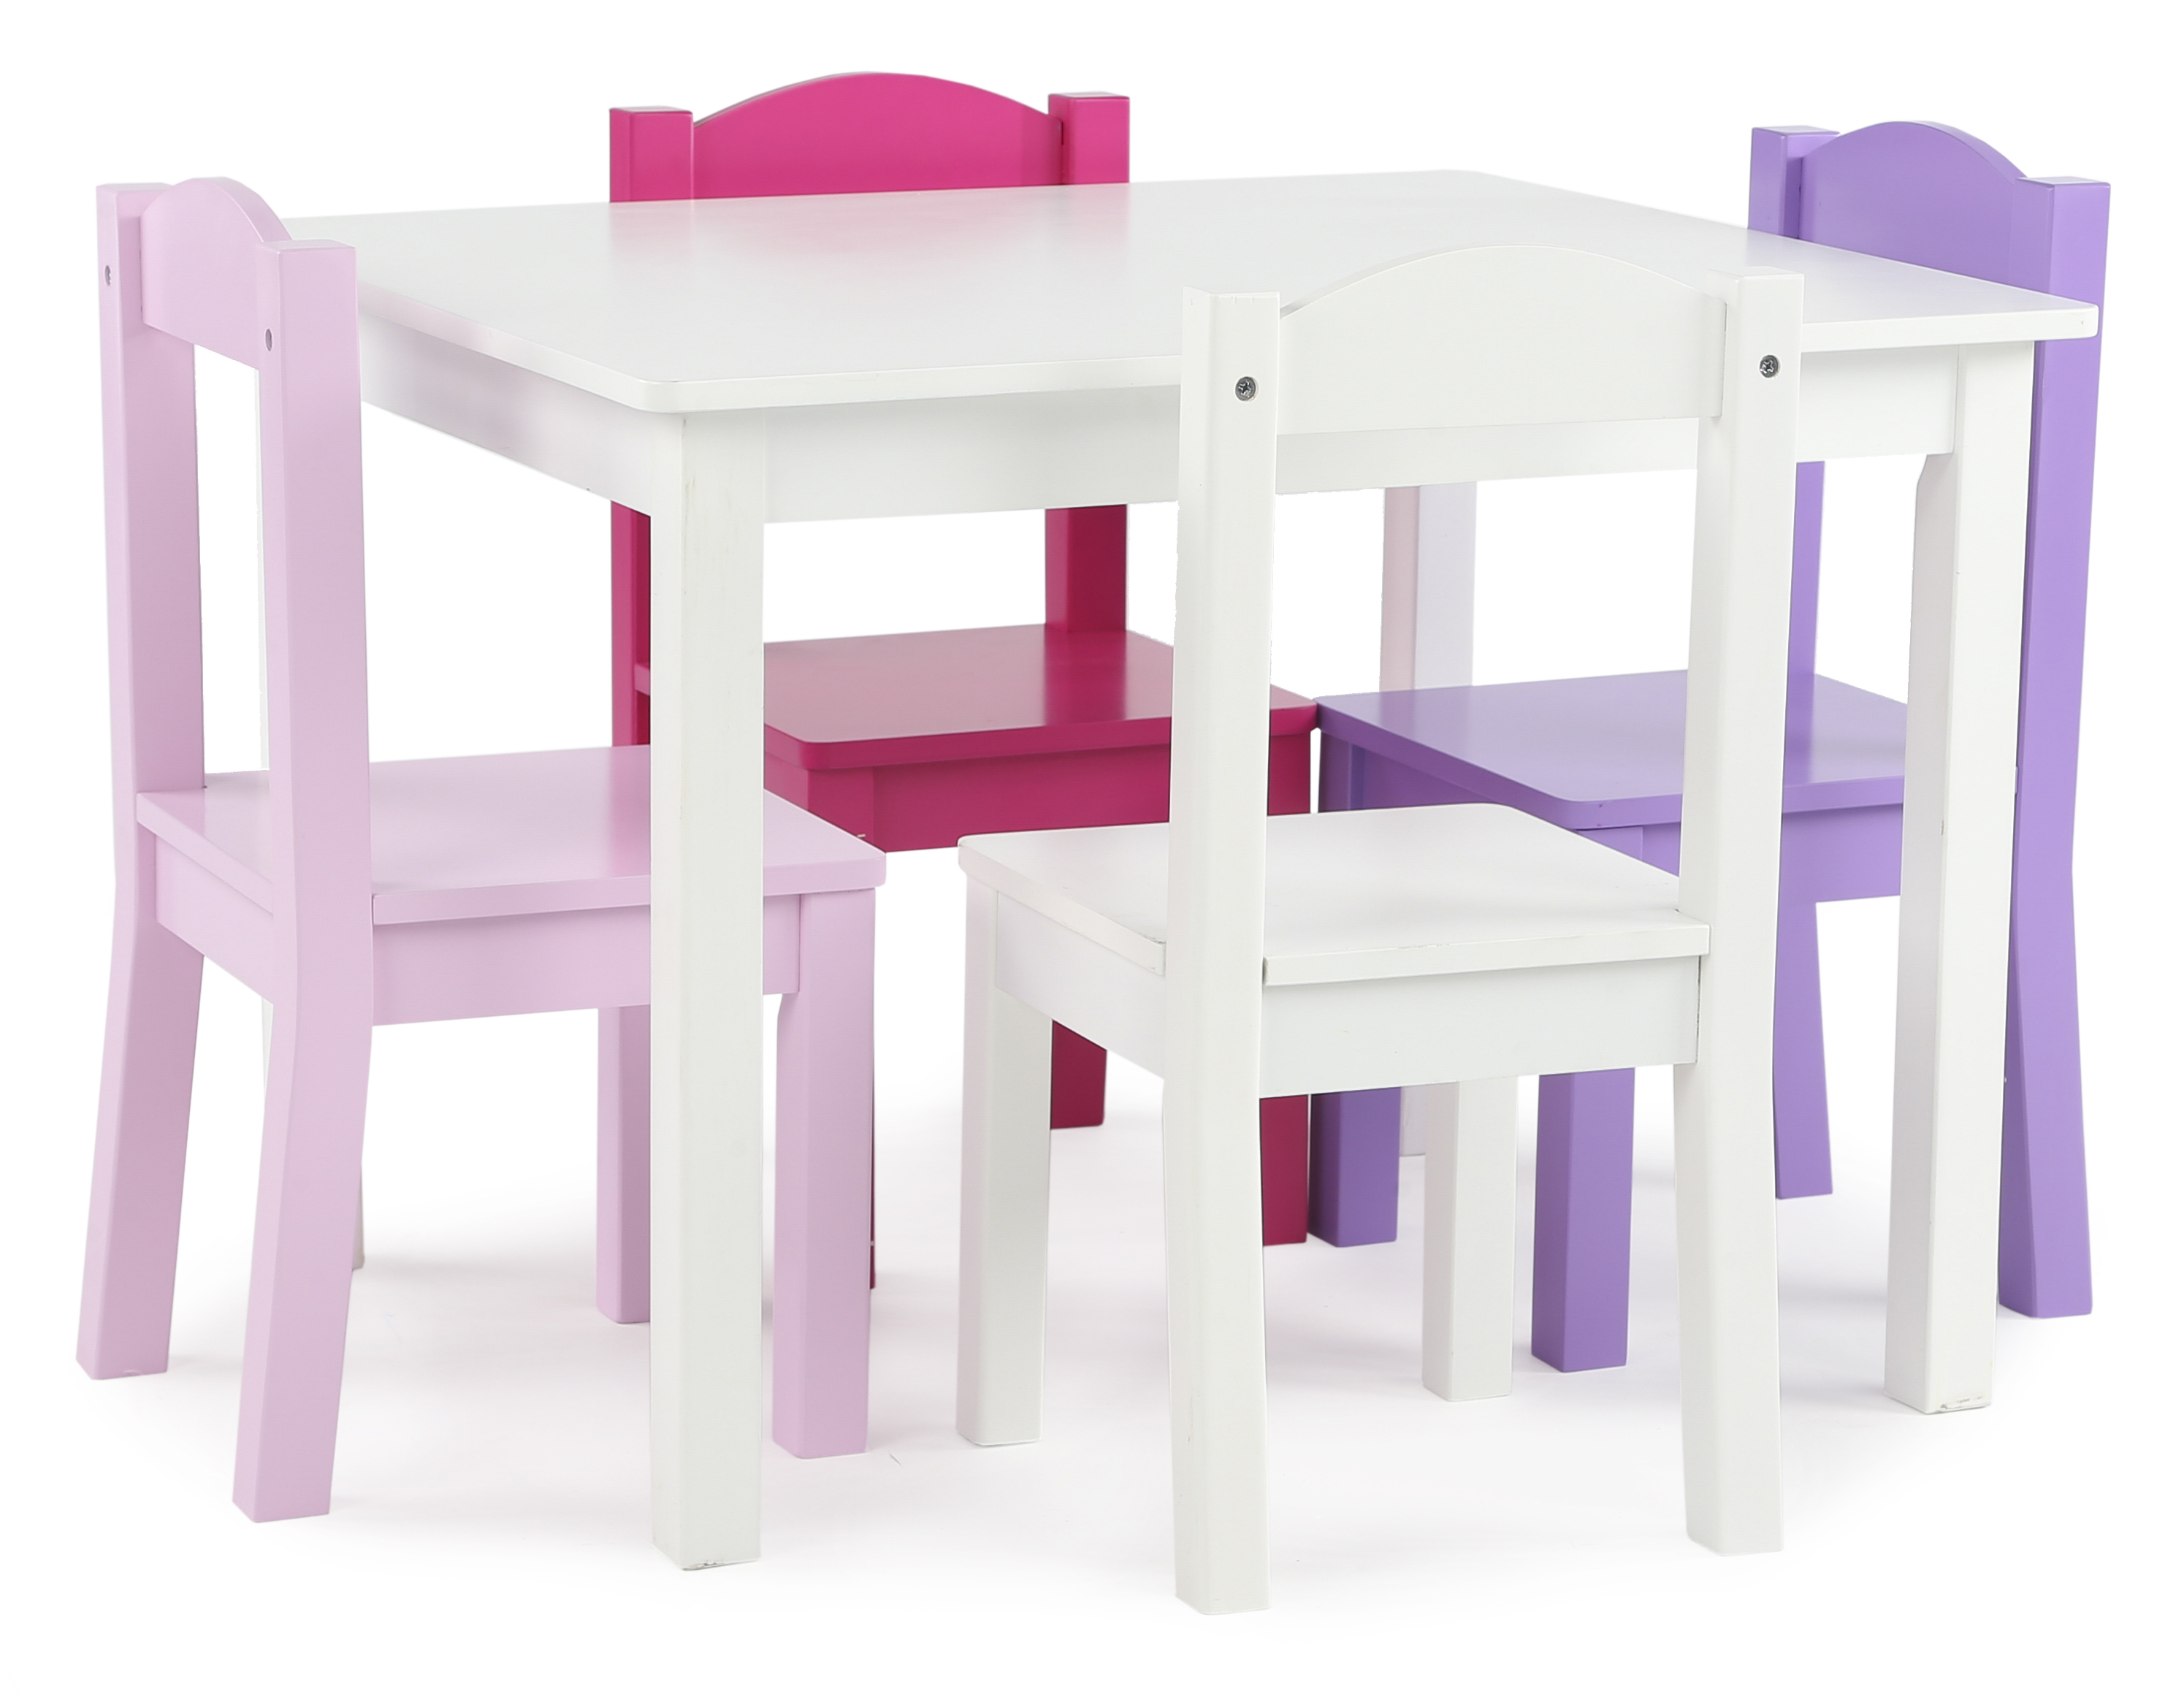 Toddler Table And Chairs Wood Tot Tutors Kids Wood Table And 4 Chairs Set White Pink